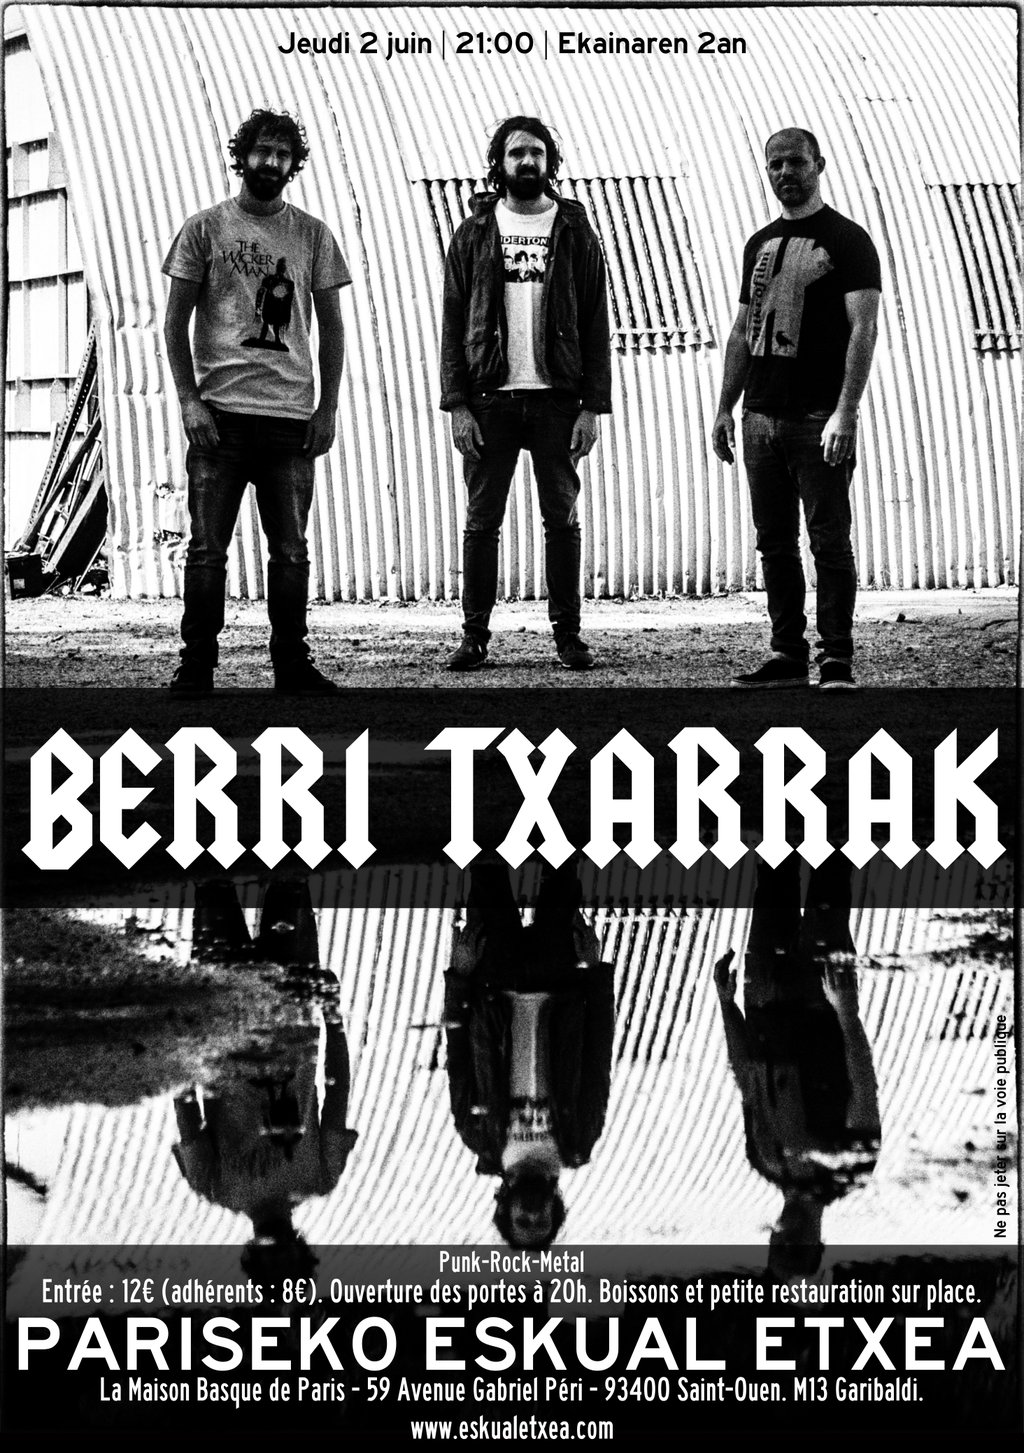 JUN 2nd: BERRI TXARRAK TO PERFORM IN PARIS AGAIN